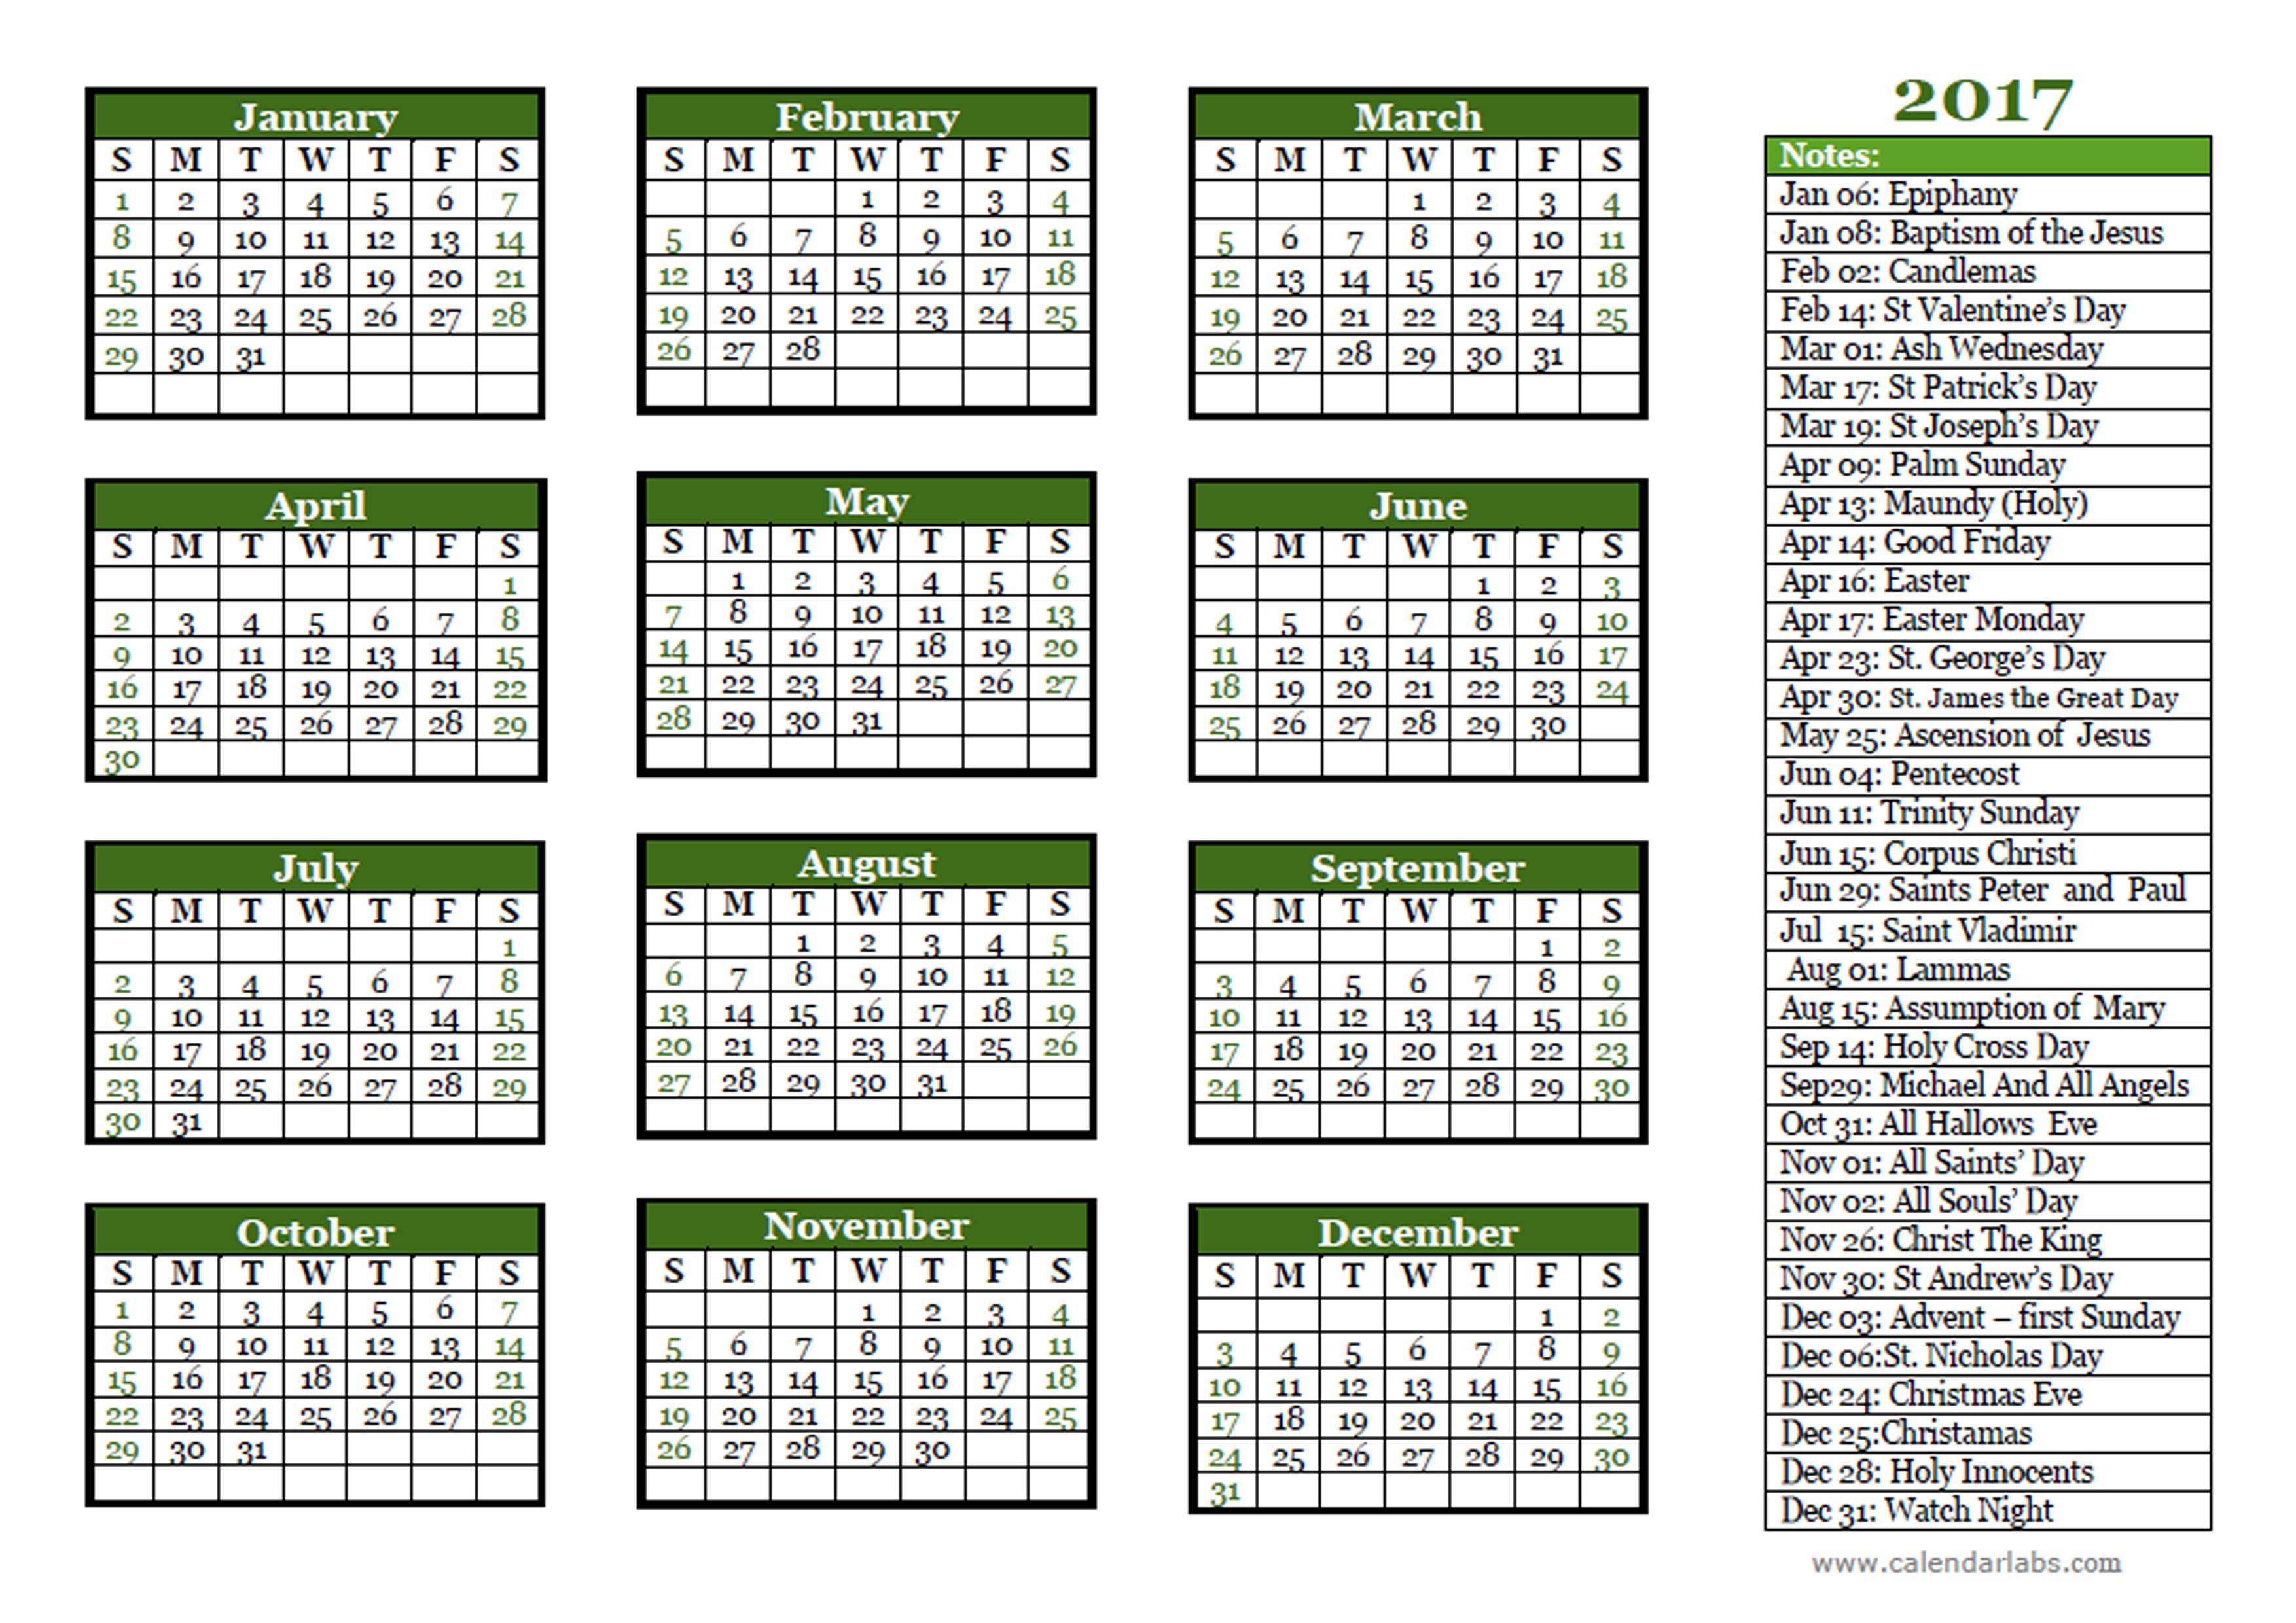 2017 Christian Festivals Calendar Template - Free Printable Templates